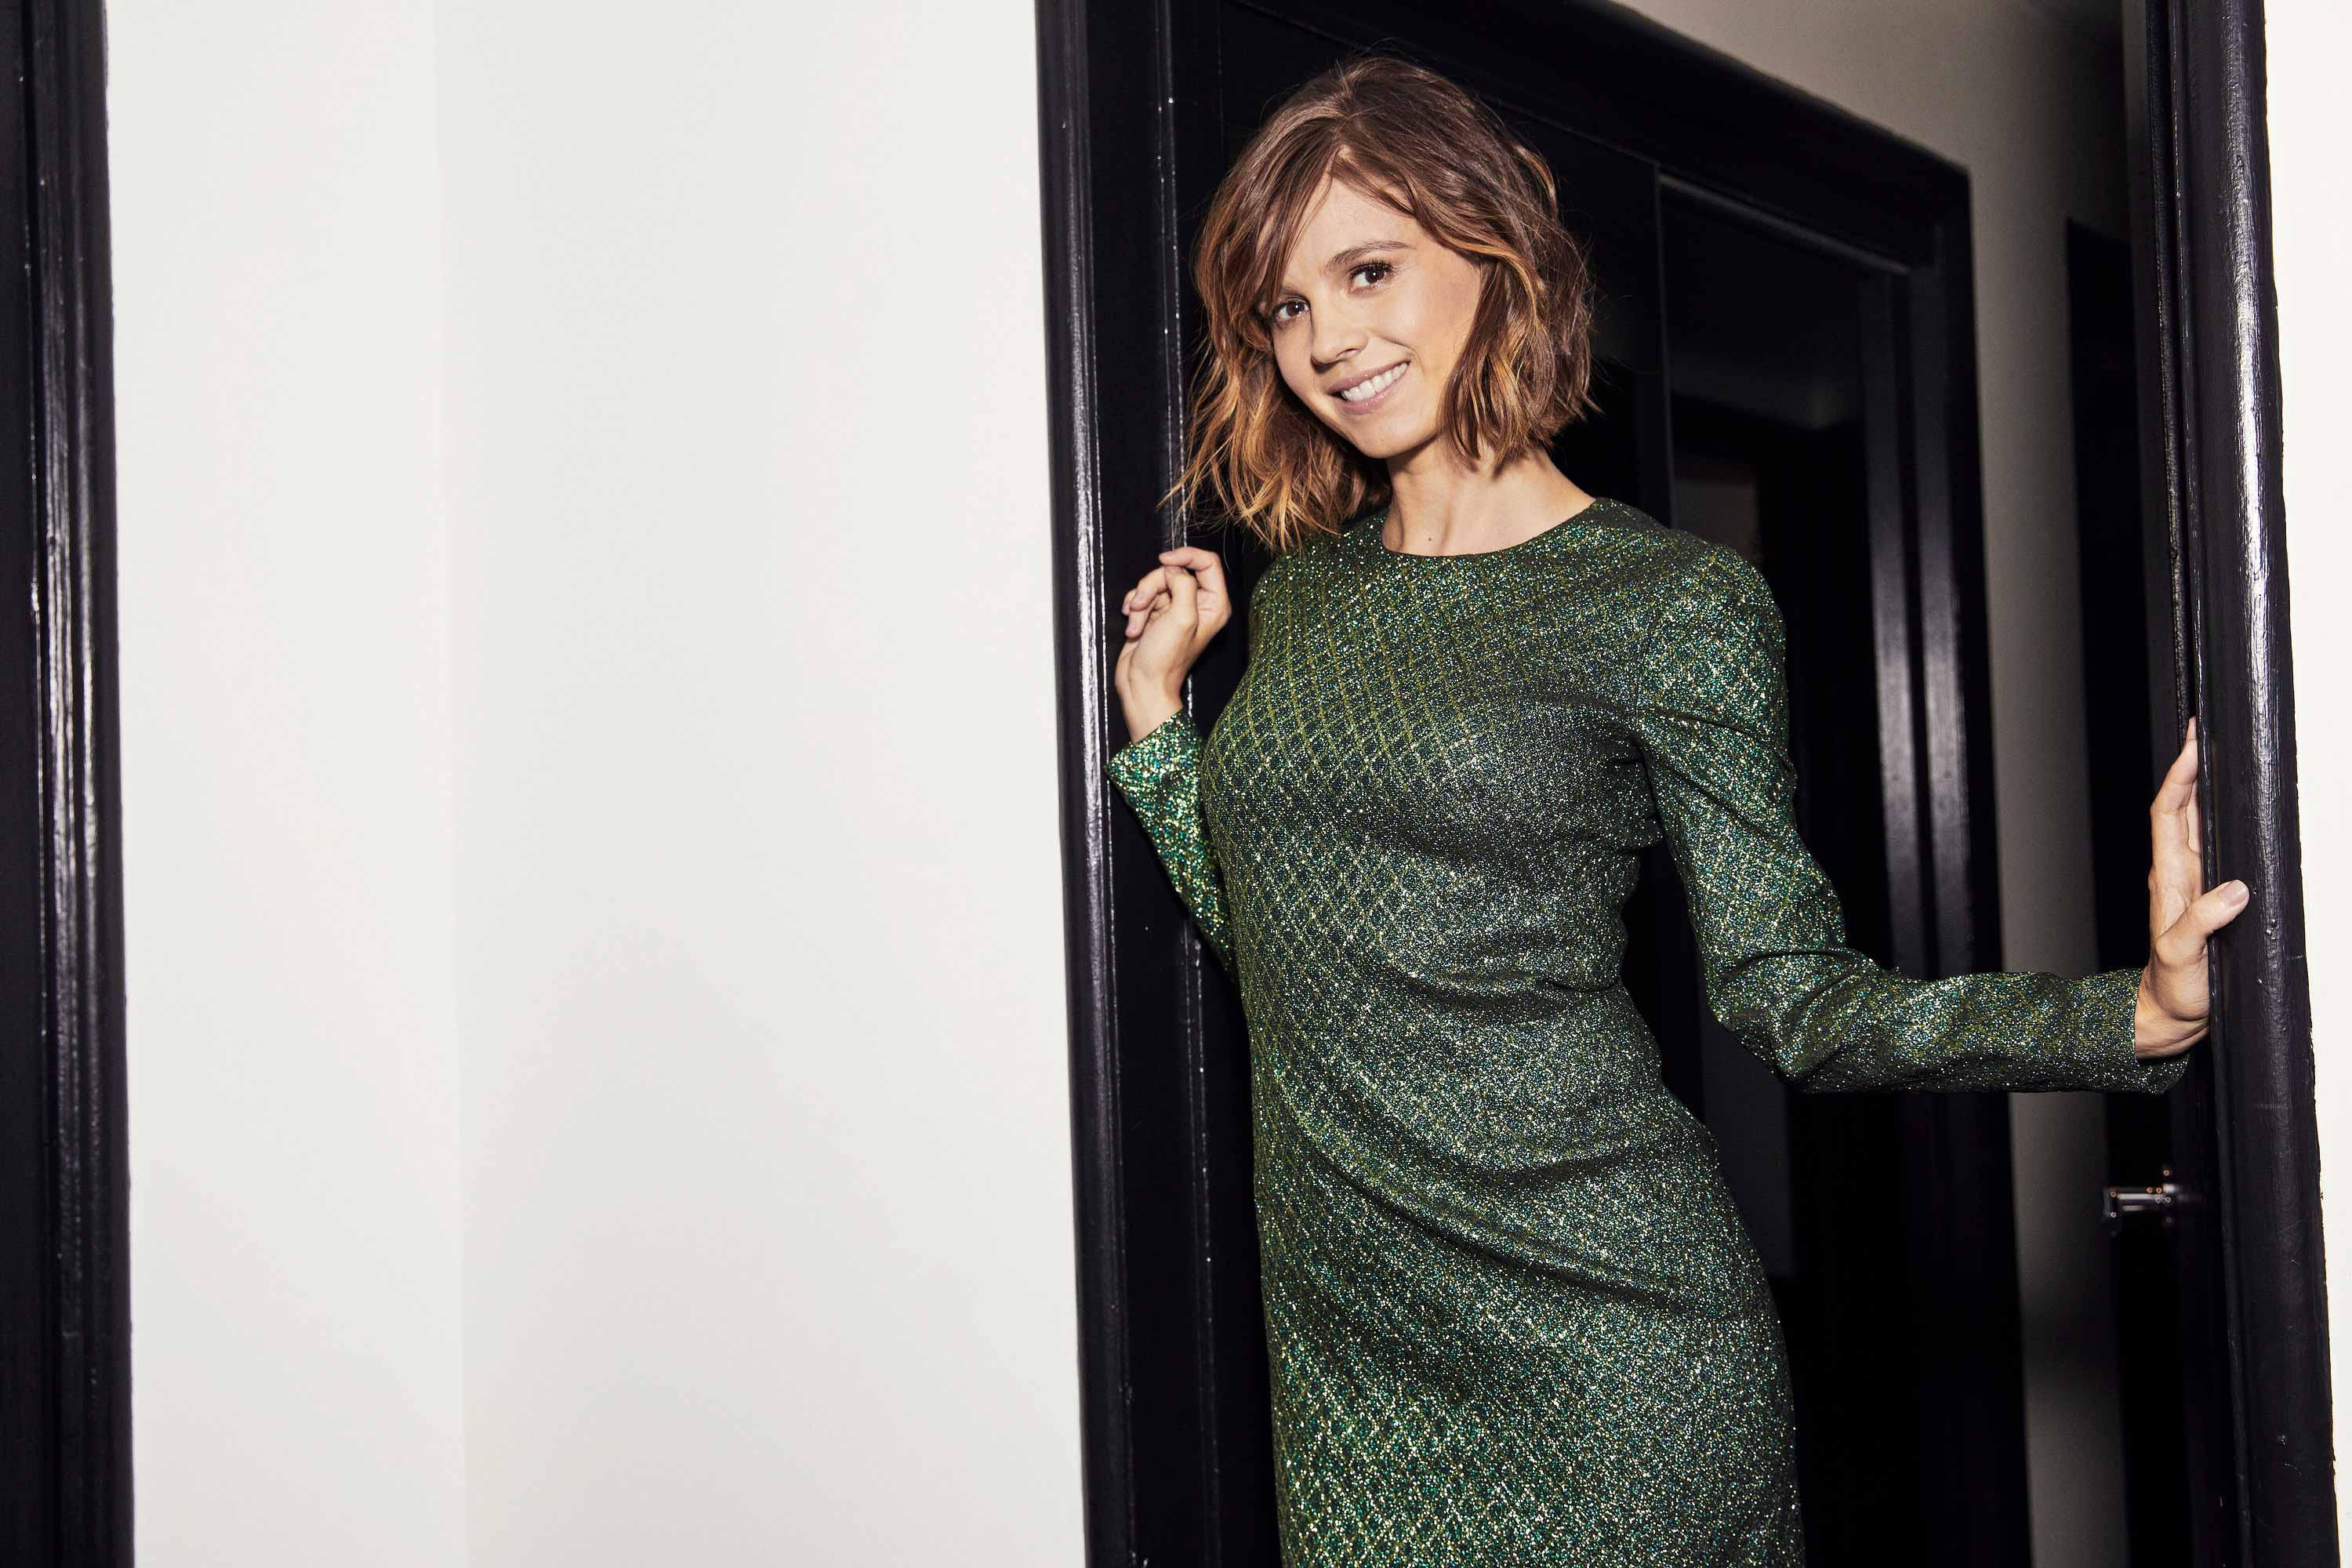 Katja Herbers in a metallic green dress with a diamond pattern